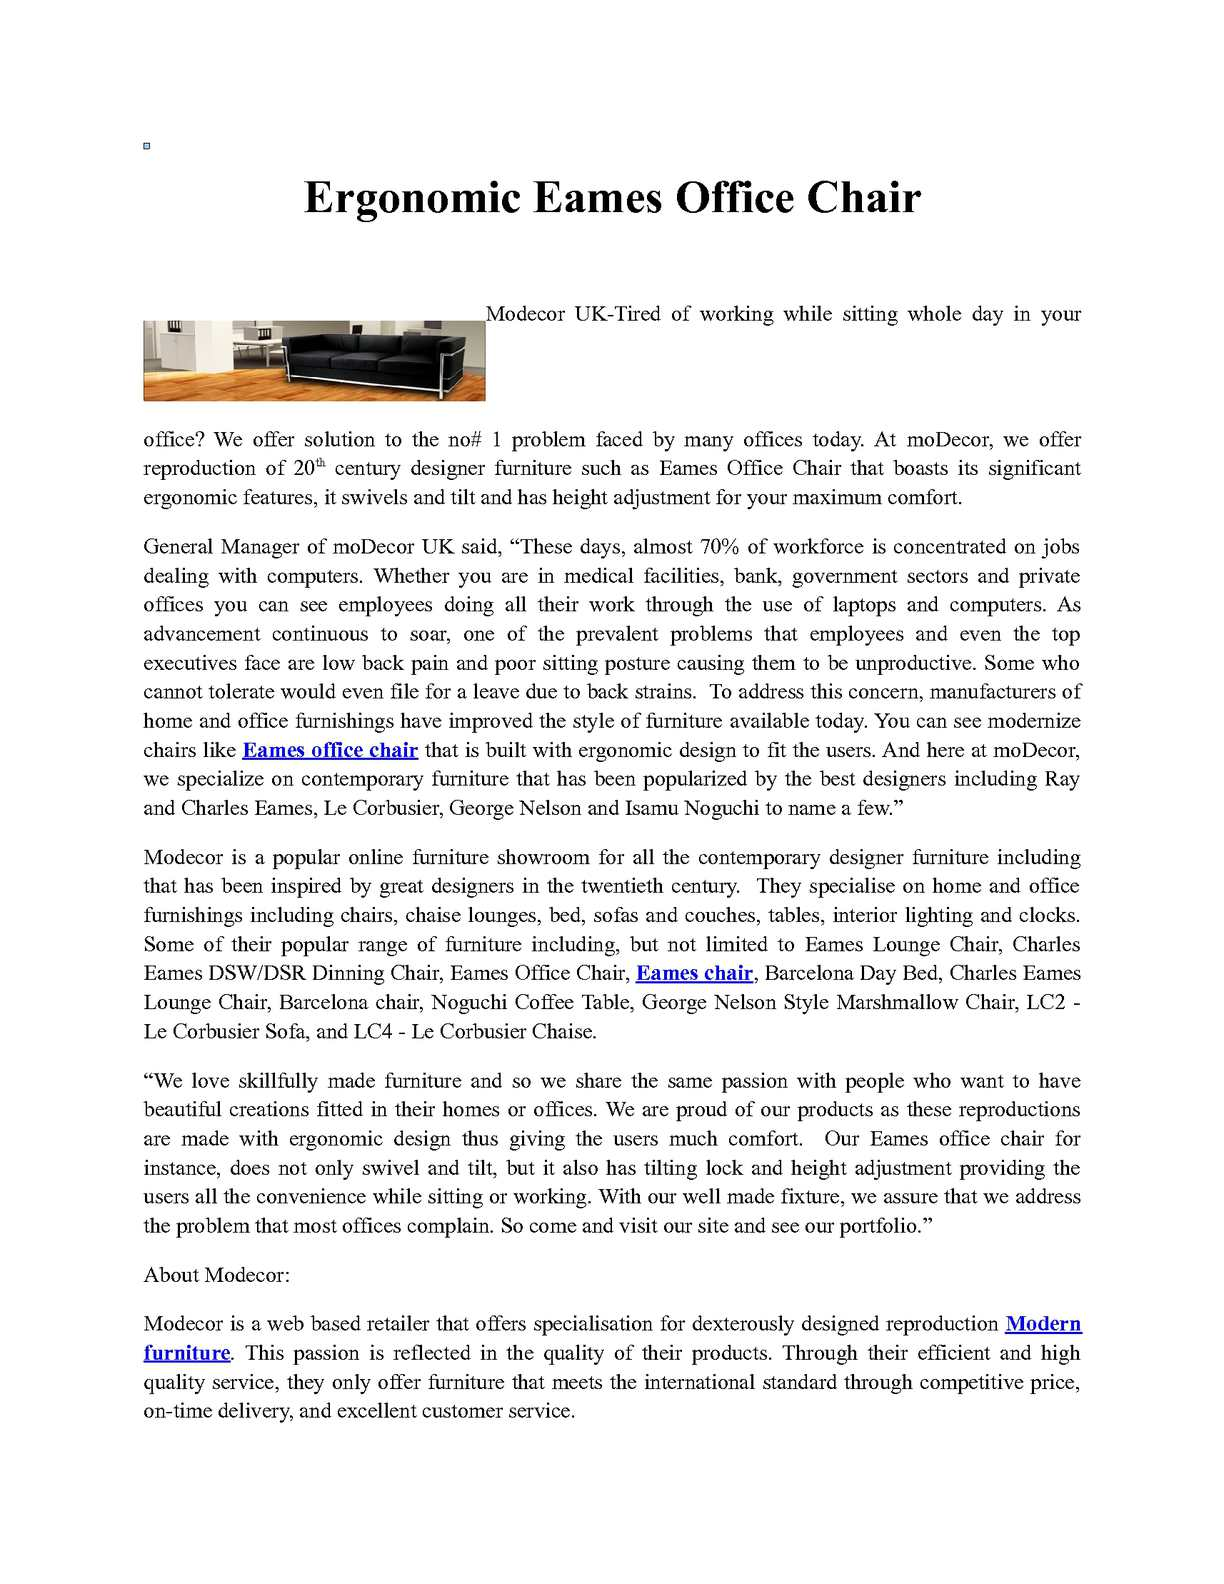 Magnificent Calameo Ergonomic Eames Office Chair Alphanode Cool Chair Designs And Ideas Alphanodeonline